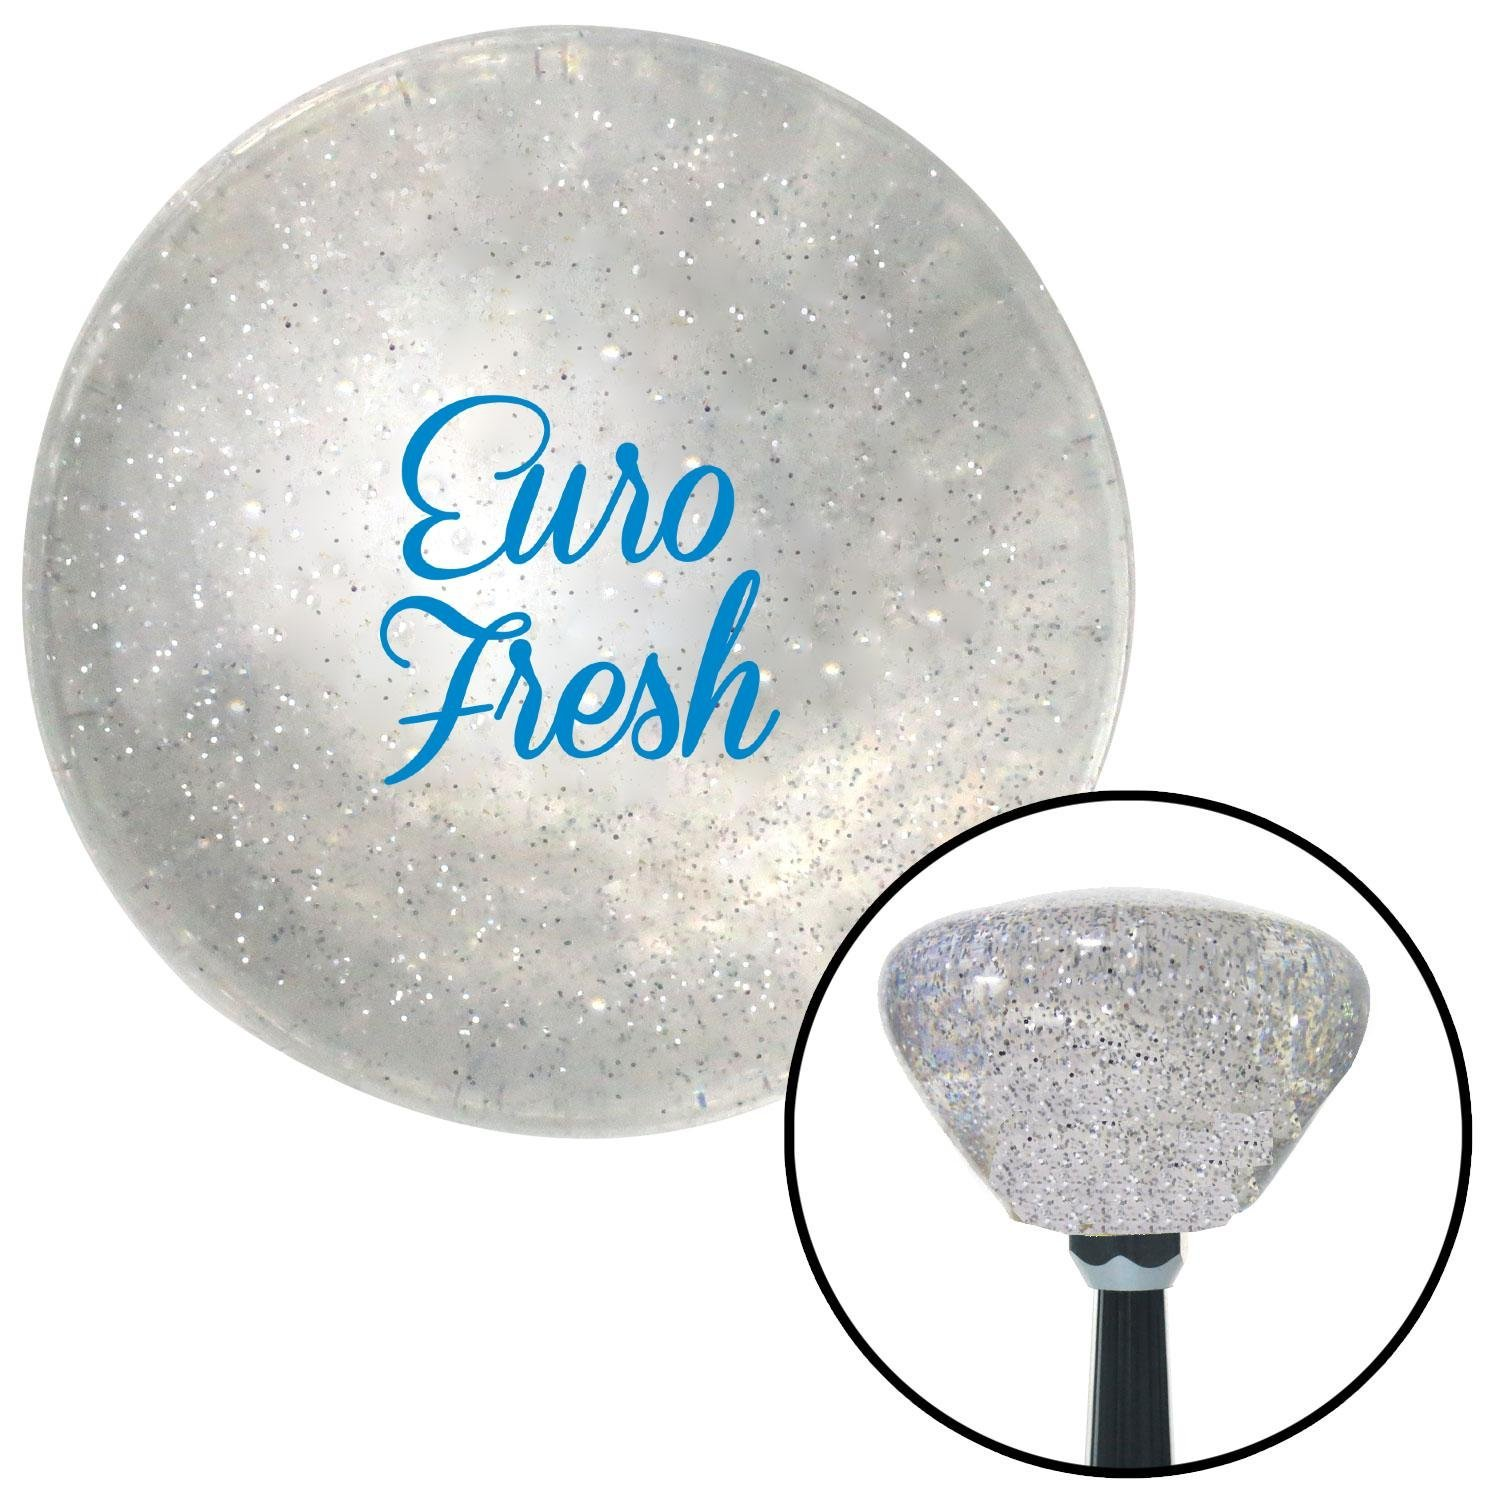 American Shifter 286637 Shift Knob Blue Euro Fresh Clear Retro Metal Flake with M16 x 1.5 Insert